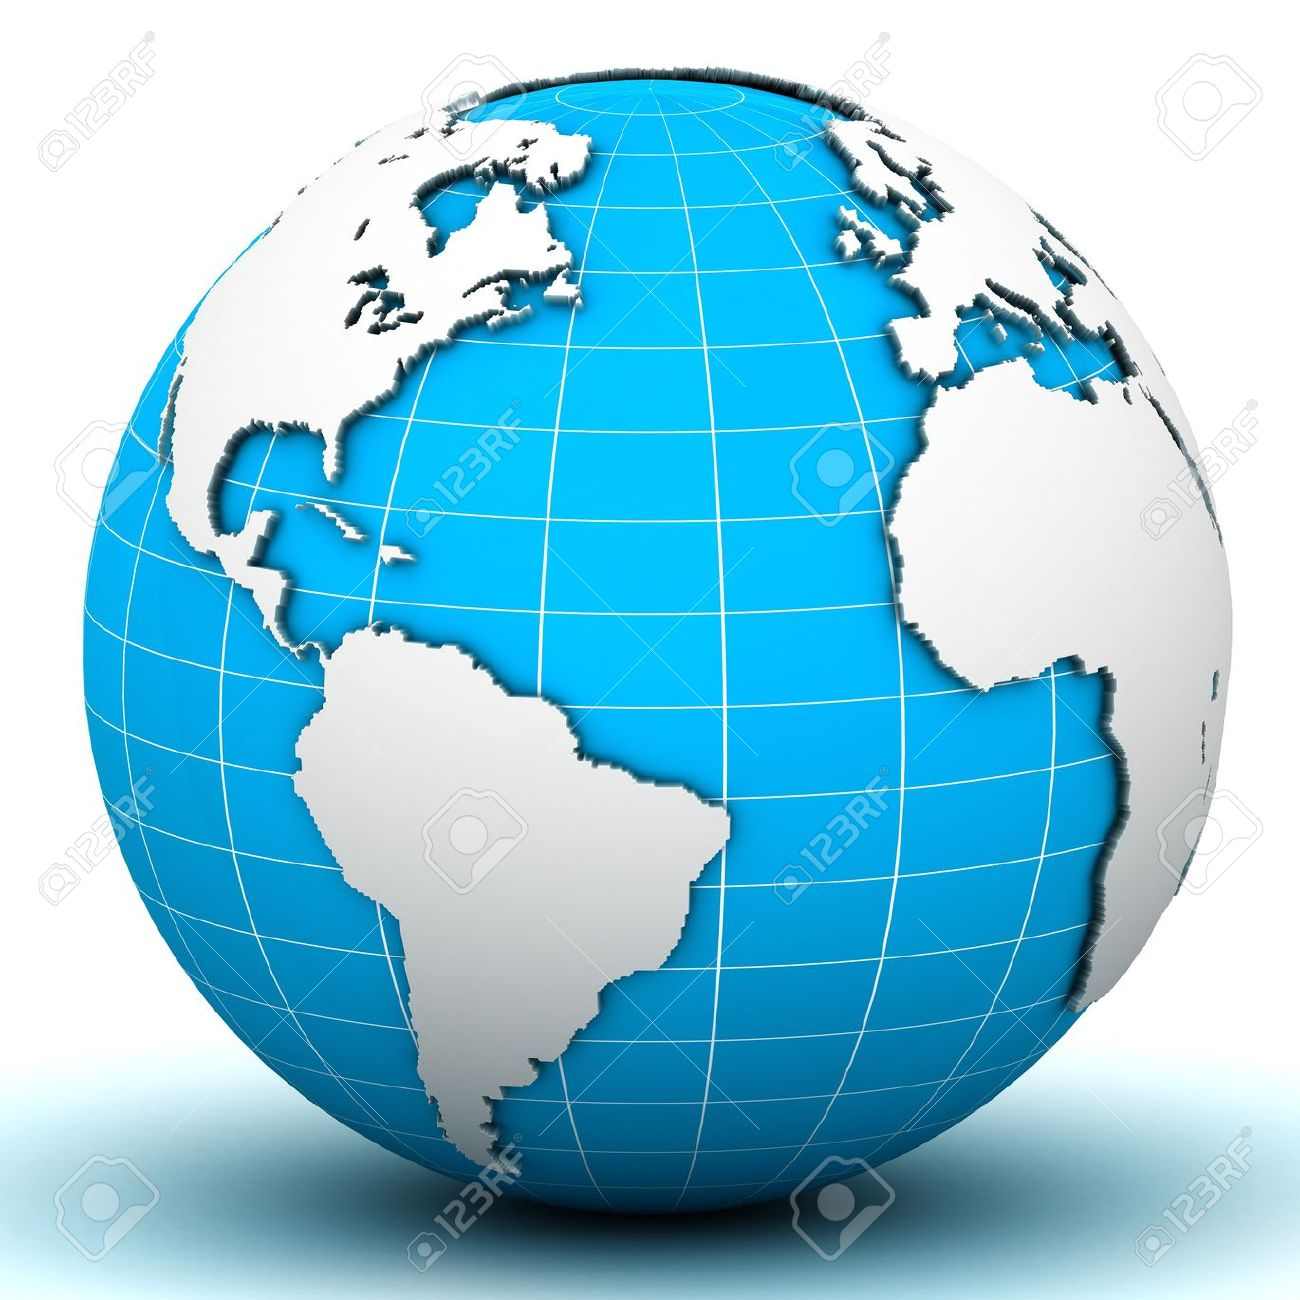 World globe map stock photo picture and royalty free image image stock photo world globe map gumiabroncs